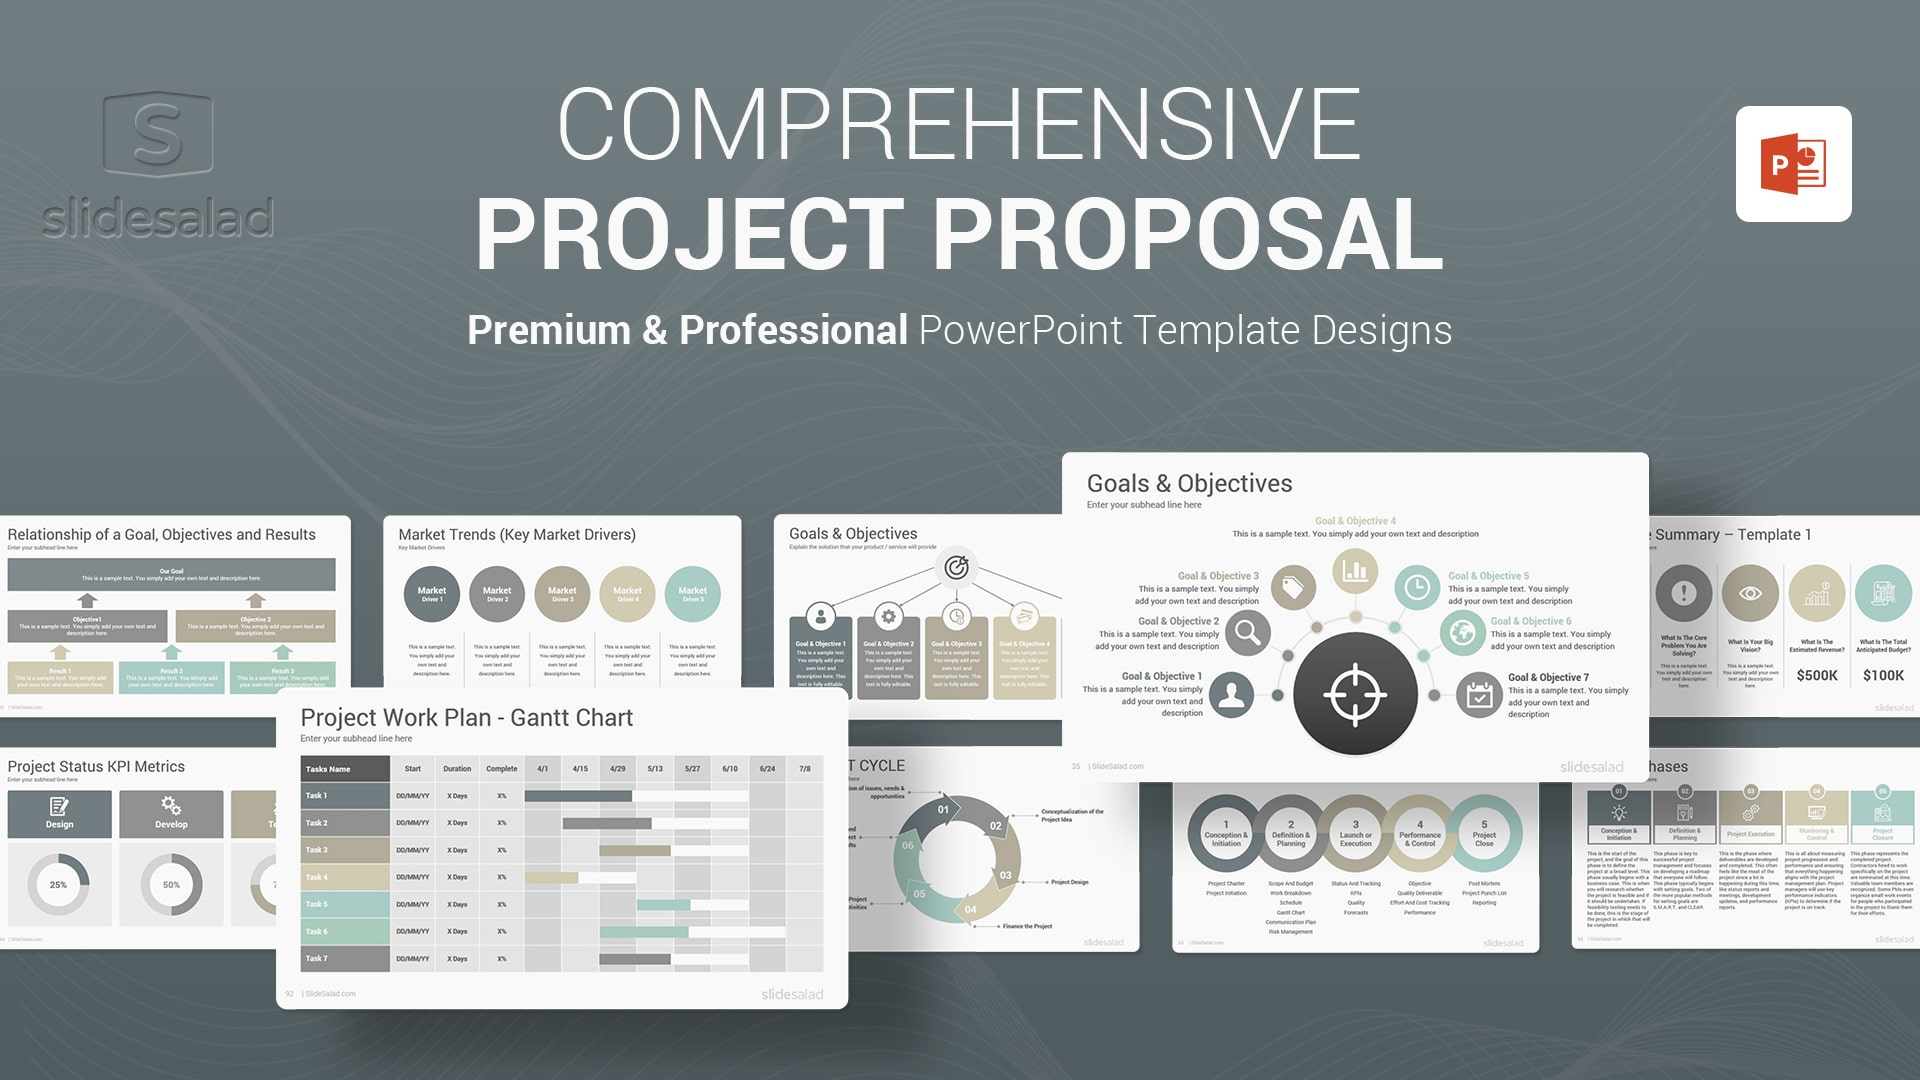 Project Proposal PowerPoint Template - Awesome Completely Customizable PowerPoint Themes